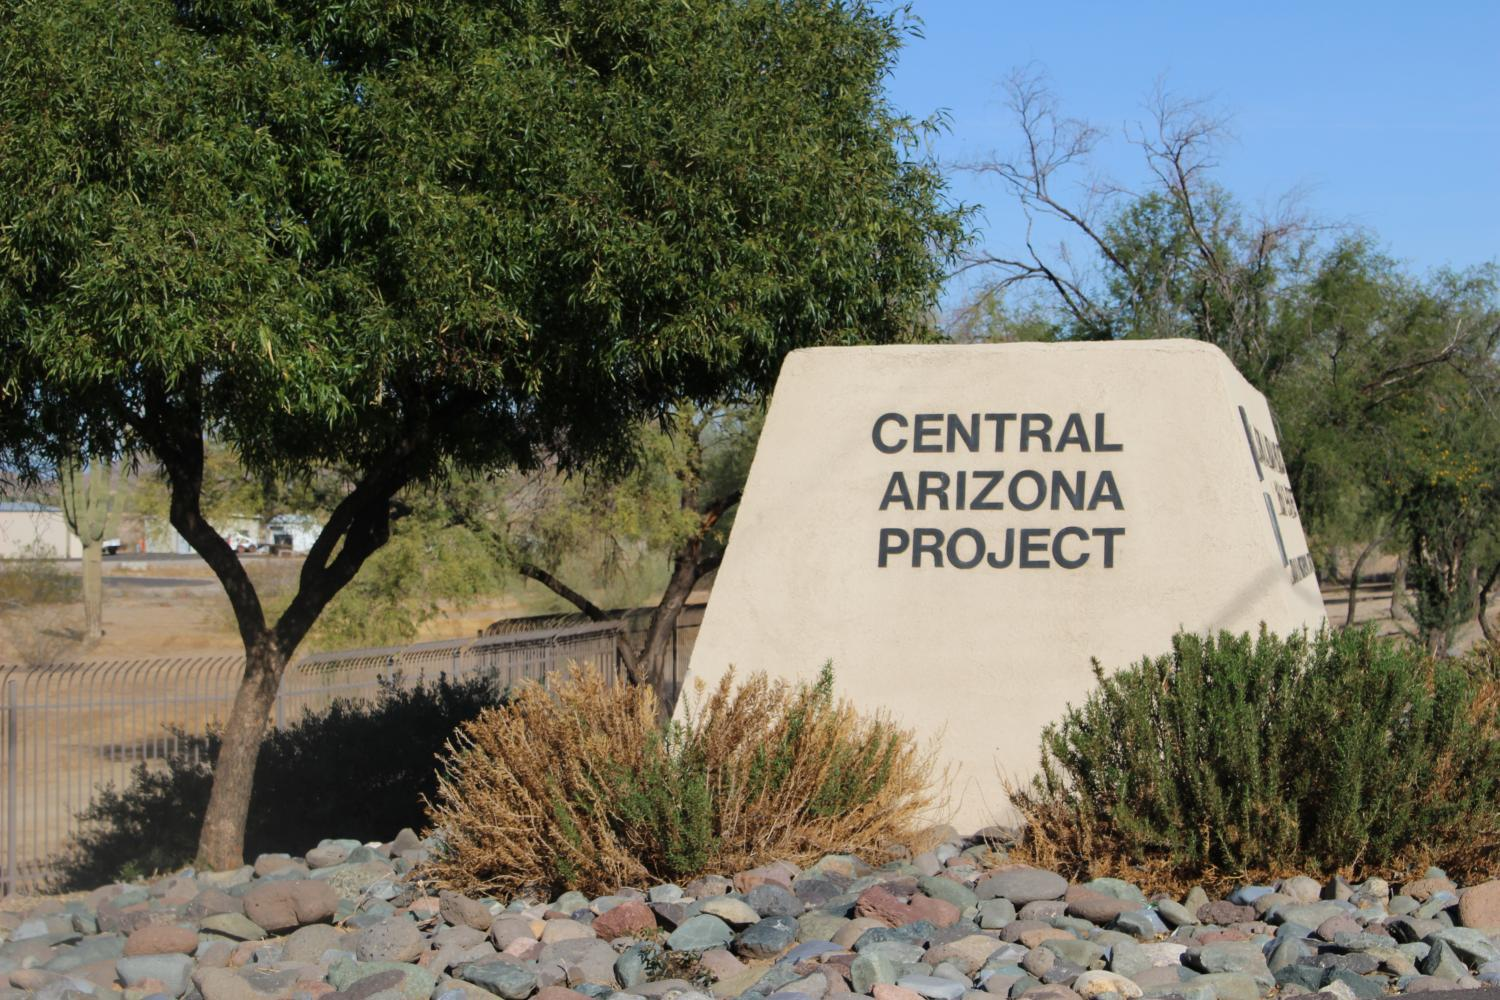 Central Arizona Project sign